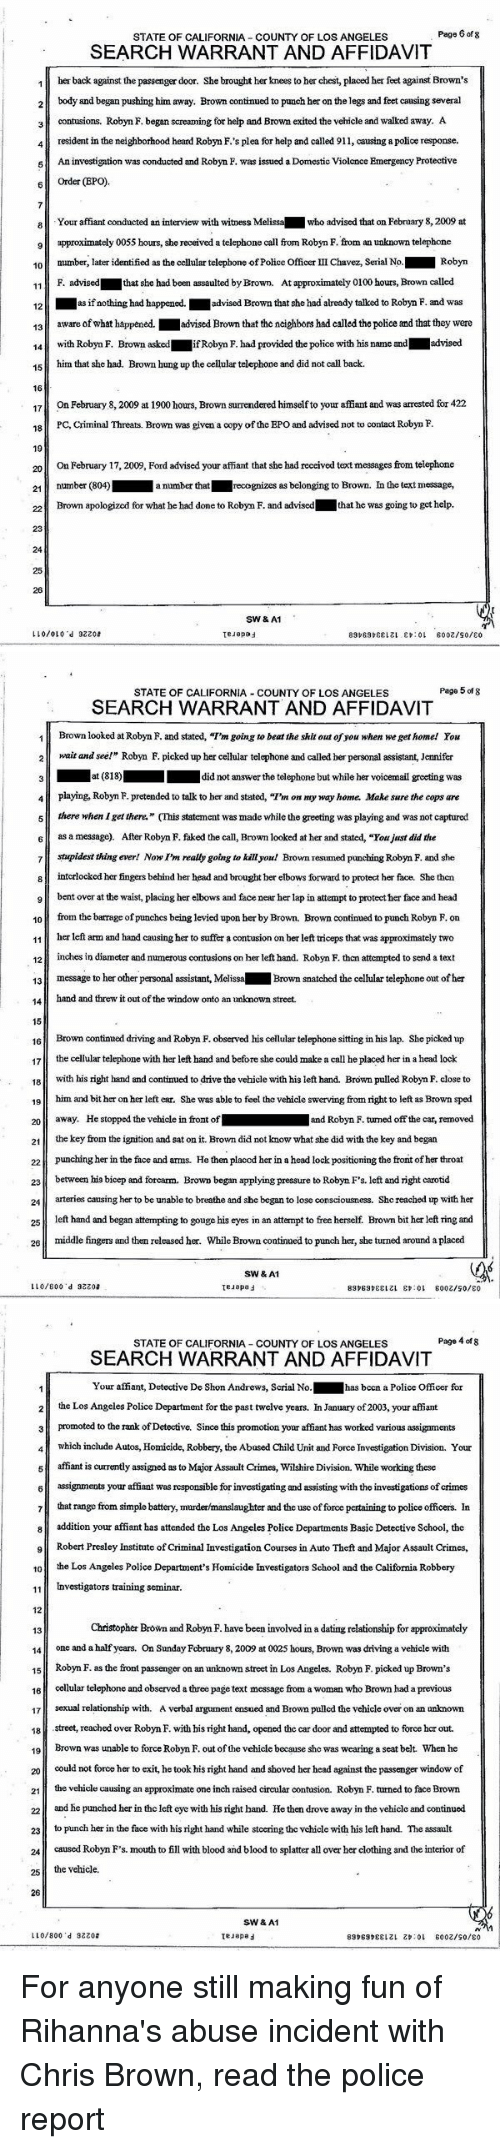 """affidavit: Page 6 of 8  STATE OF CALIFORNIA COUNTY OF LOS ANGELES  SEARCH WARRANT AND AFFIDAVIT  1 berback against the passenger door. She brought her knees to her chest, placed her feet againstBrown's  2 body and began pushing him away. Brown continued to punch her on thelegs and feet causing several  3 contusions. Robyn F. began screaming for help and Brown exited the vehicle and walked away. A  4 resident in the neighborhood heard Robym F.'s plea for help and called 911, causing a police response,  6 An investigation was conducted and Robyn F. was issued a Domestic Violence Emergency Protective  6 Order (EPO)  8 Your affiant conducted an interview with witness  Melissa who advised that on February 8,2009 at  approximately 0055 hours, she received a telephone call from Robym F. from an unknown telephone  10  number, later identified as the cellular telephone ofPolice Officer III Chavez, Serial No.  Robyn  approximately 0100 hours, Brown called  F. advised  that she had been assaulted by Brown. At  11  12  as if nothing had happened.  advised Brown that she had already talked to Robyn F. and was  13 aware of what happened  advised Brown that the neighbors had called the police and that they were  14 with Robyn F. Brown asked  Robyn F. had provided the police with his name and  Ladvised  15 him that she had. Brown hung up the cellular telephone and did not call back.  16  17  On February 8, 2009 at 1900 hours, Brown sumendered himselfto your affiant and was arrested for 422  18 PC, Criminal Threats. Brown was given a copy of the EPO and advised not to contact Robyn F.  19  20 On February 17, 2009, Ford advised your affiant that she had received text messages from telephone  21  number (804)  anumber that  recognizes as belonging to Brown. In the text message,  that he was going to get help.  Brown apologized for what he had done to Robyn F. and advised  23  25  SW& A1  LLO/OLO """"d 32208  Teuepad  6002/90/ o   Page 5 of 8  STATE OF CALIFORNIA COUNTY OF LOS ANGELES  SE"""